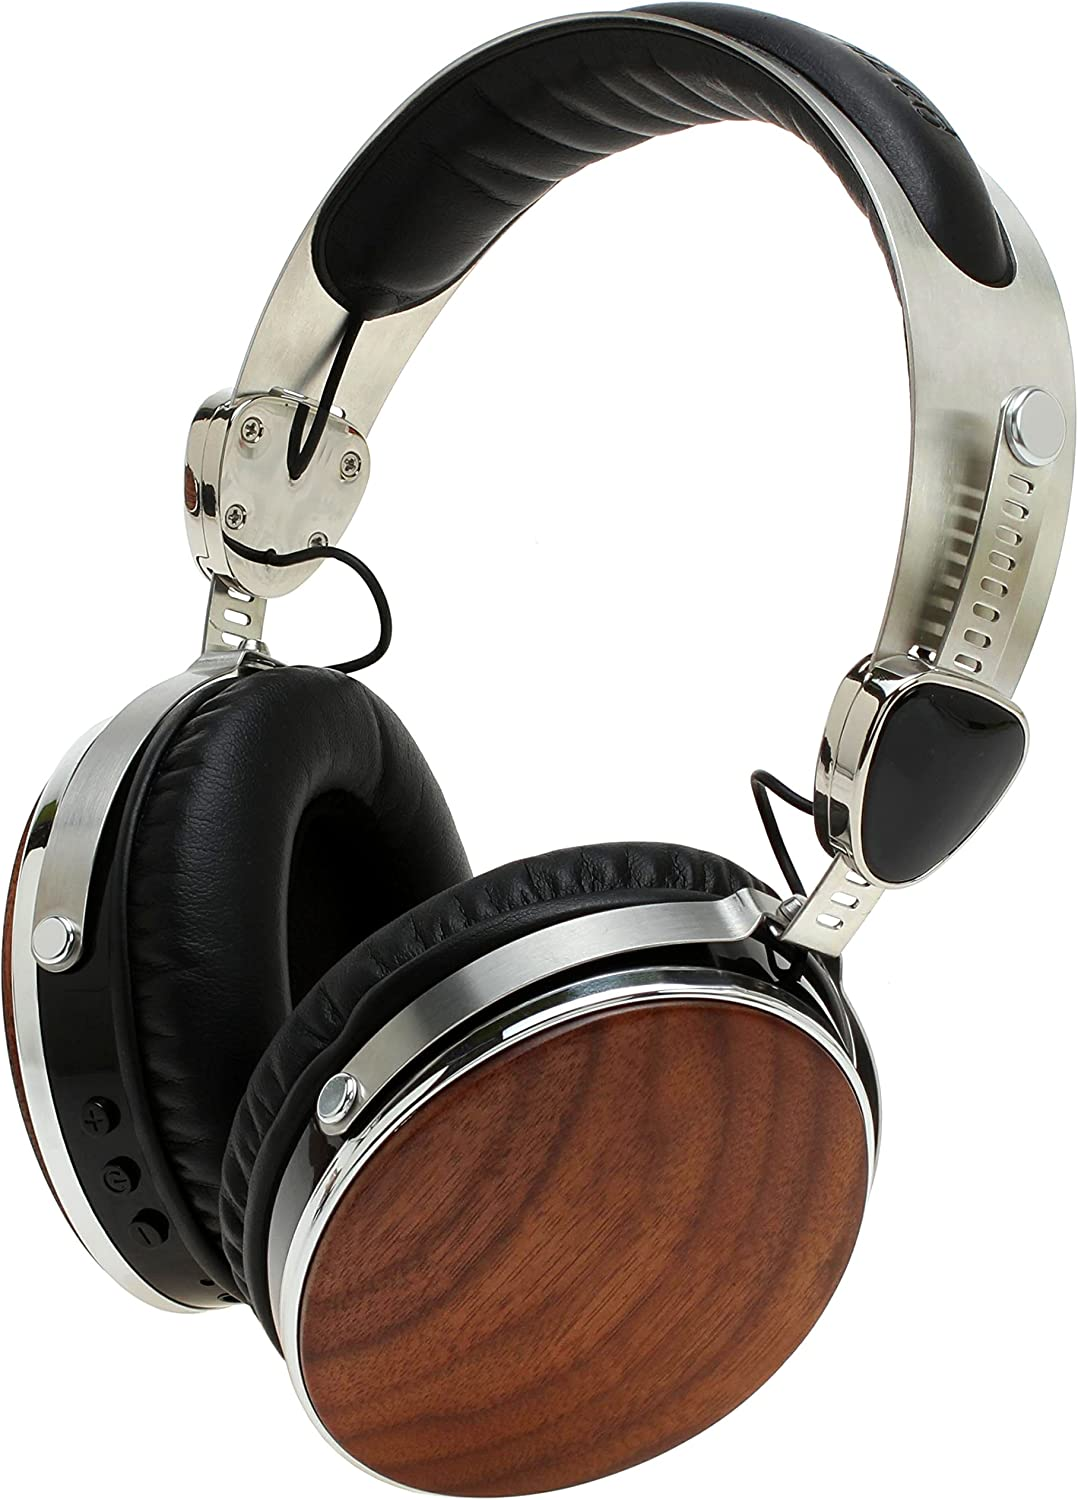 10 Best Vintage Headphones & Retro Headphones Of 2020 6